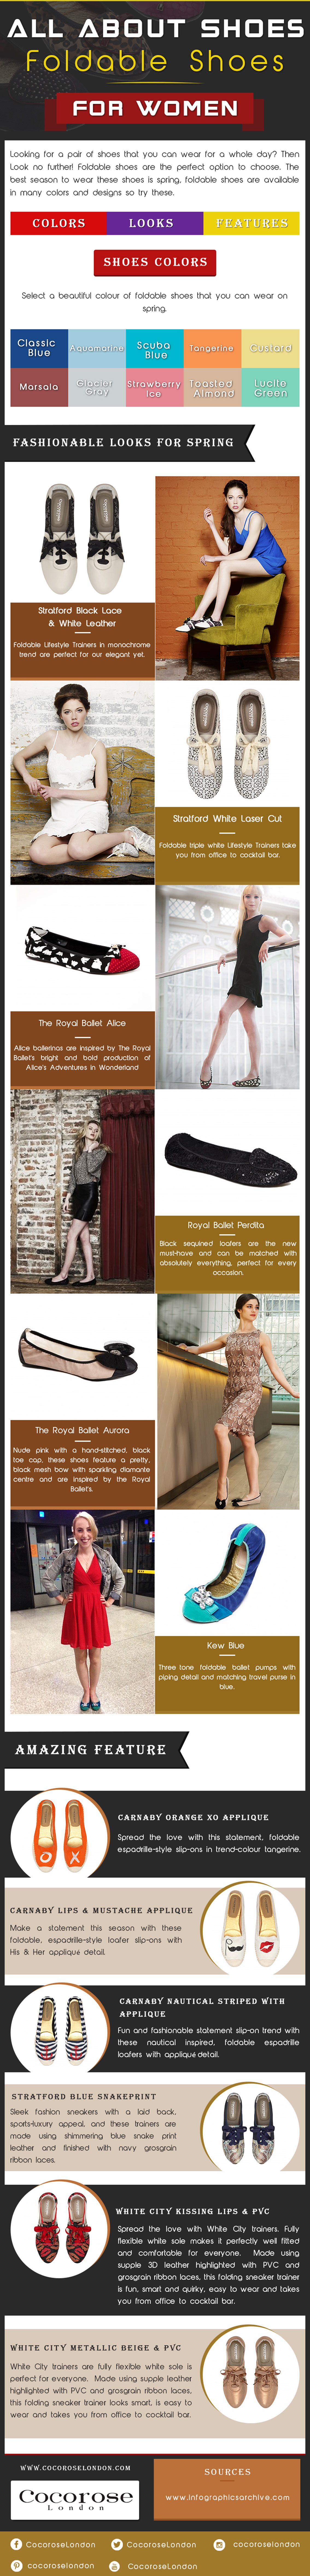 Fashionable Foldable Shoes for Women Infographic